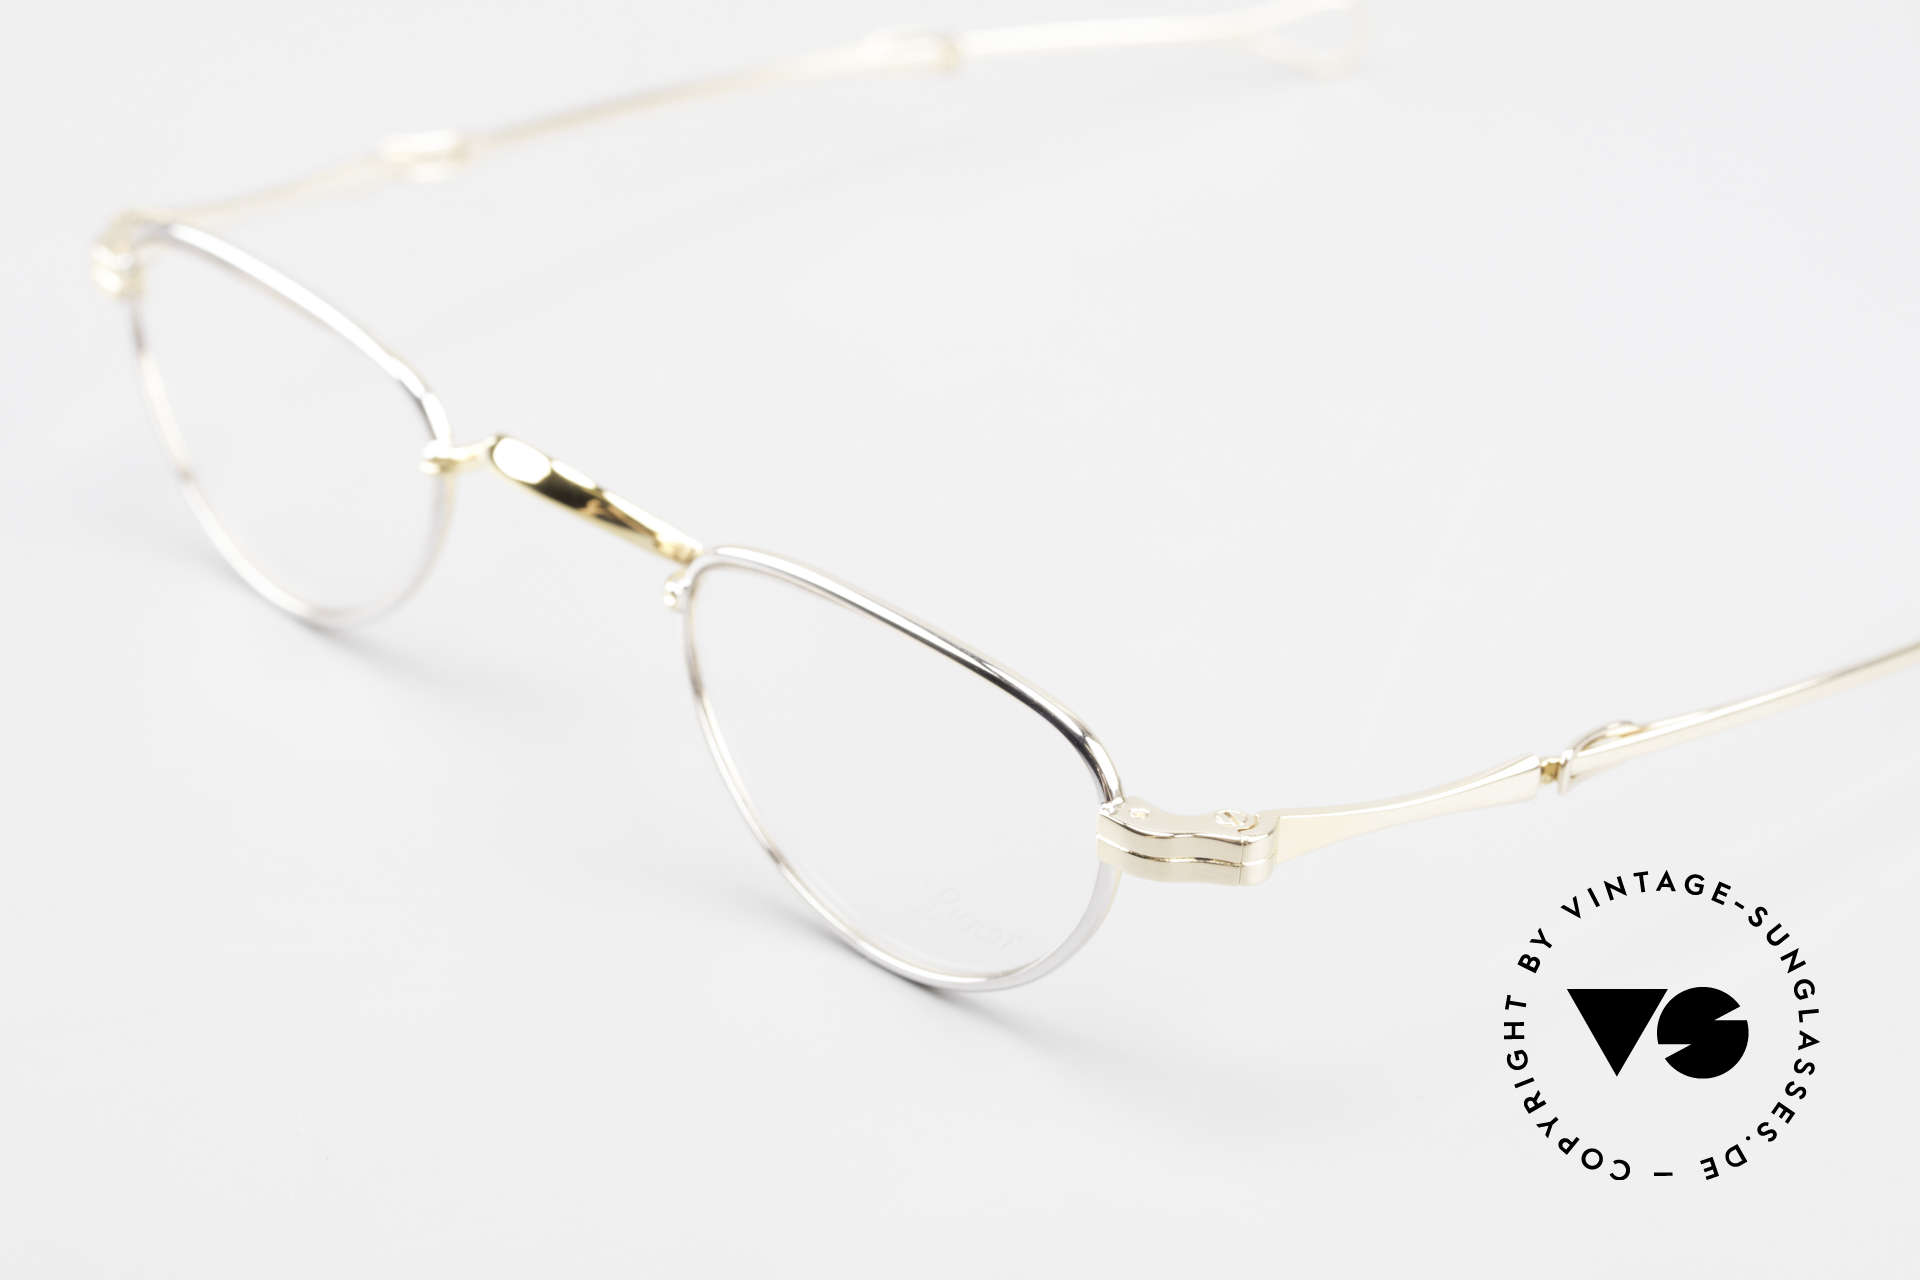 Lunor I 06 Telescopic Extendable Reading Frame, bicolored frame = a combination of gold and silver parts, Made for Men and Women